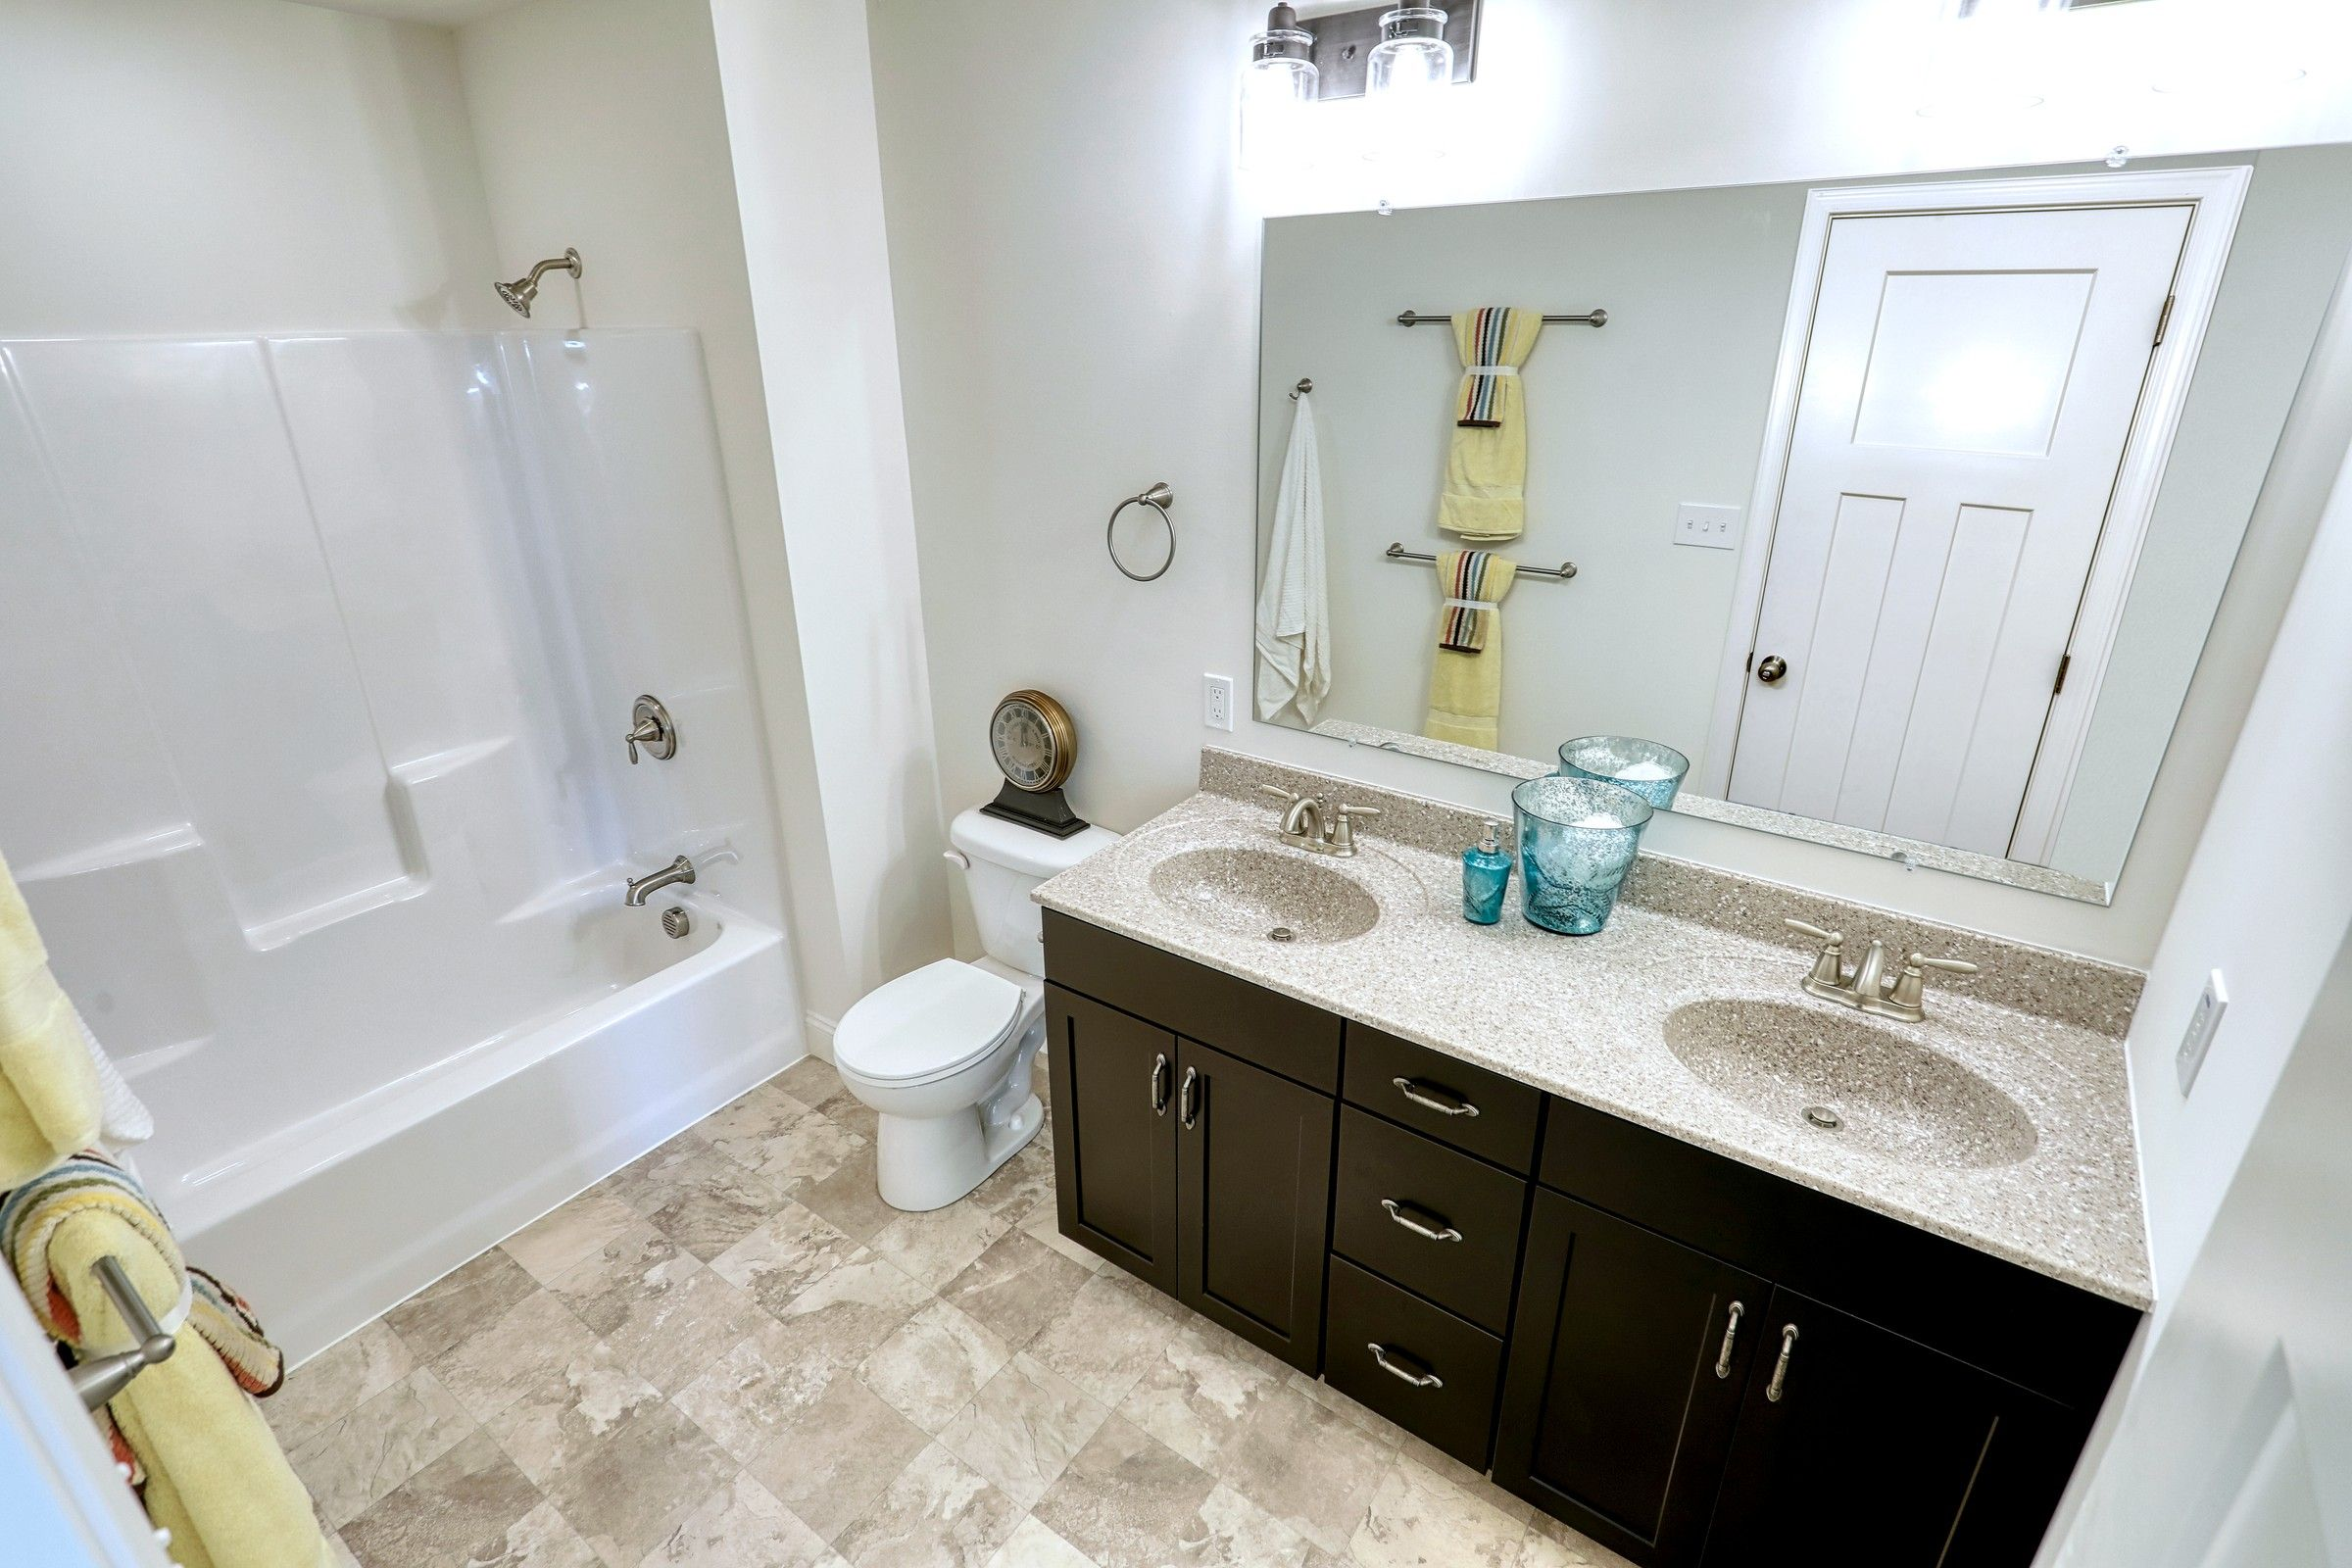 Bathroom featured in the Parker Normandy By Keystone Custom Homes in York, PA